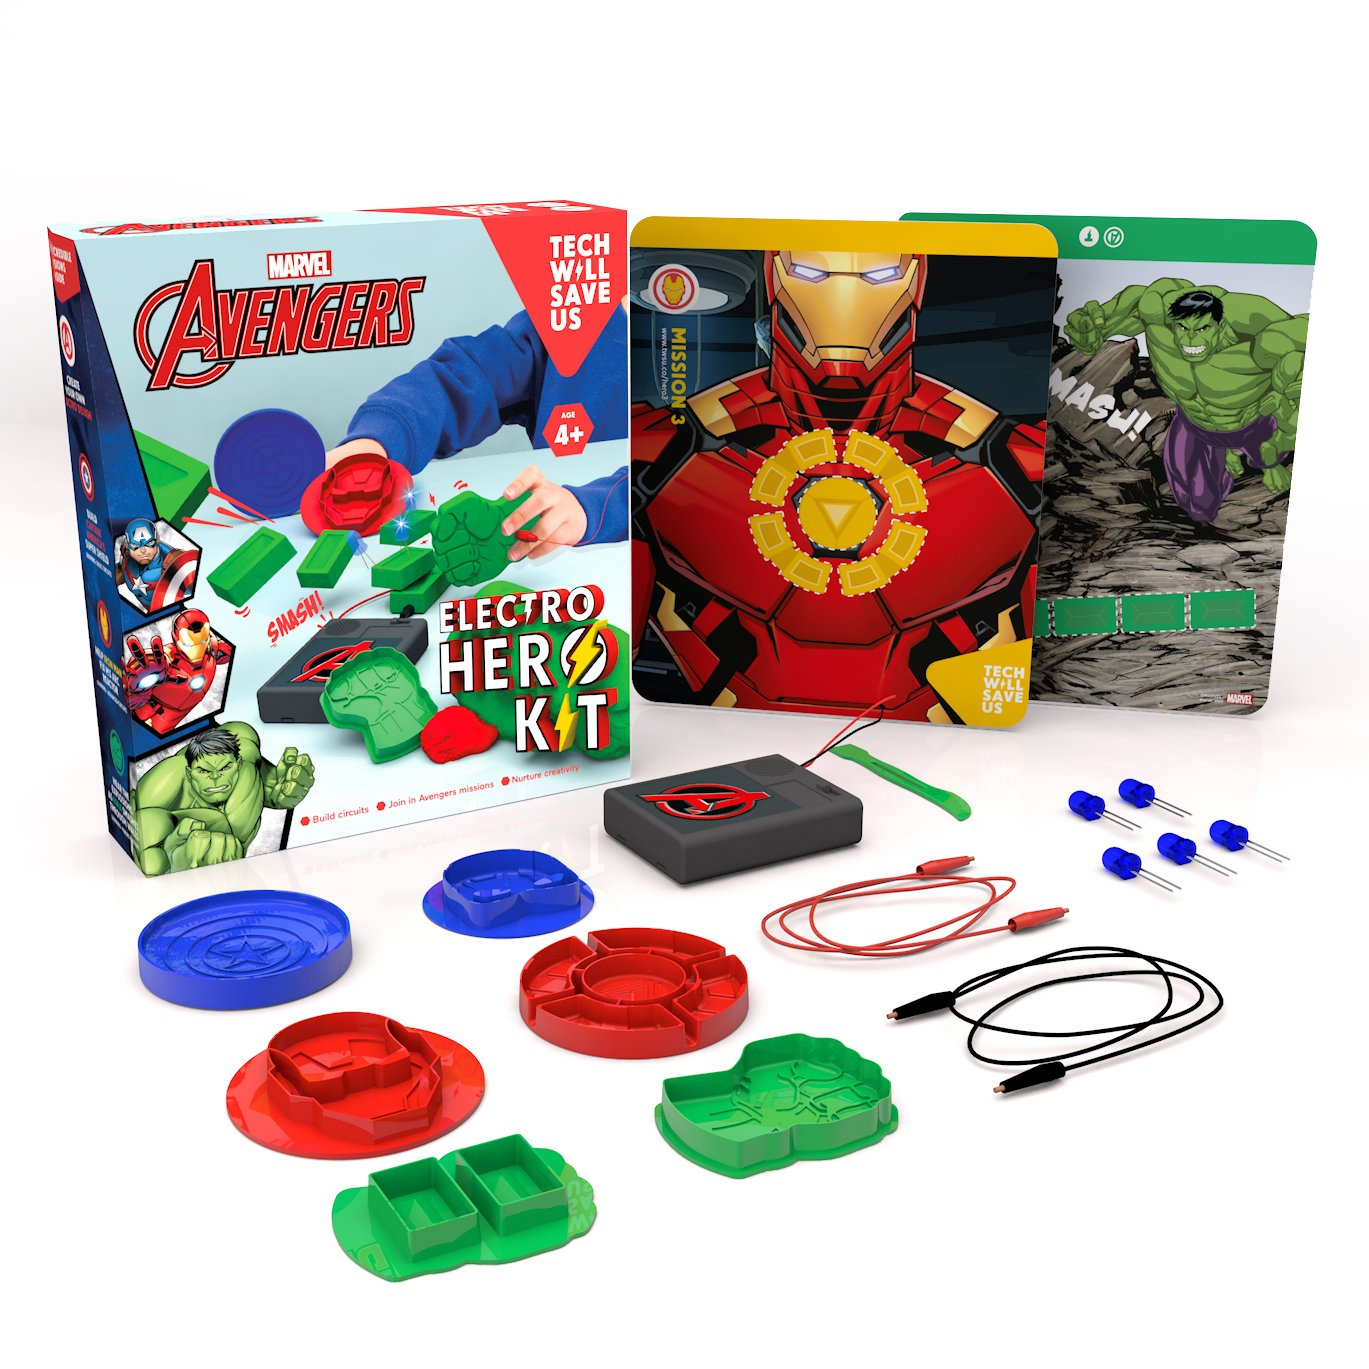 Tech Will Save Us Avengers Electro Hero Kit Educational Dough Stem Iron Man Circuit Superhros Marvel Comics Logostore Toy For Ages 4 Toys Games